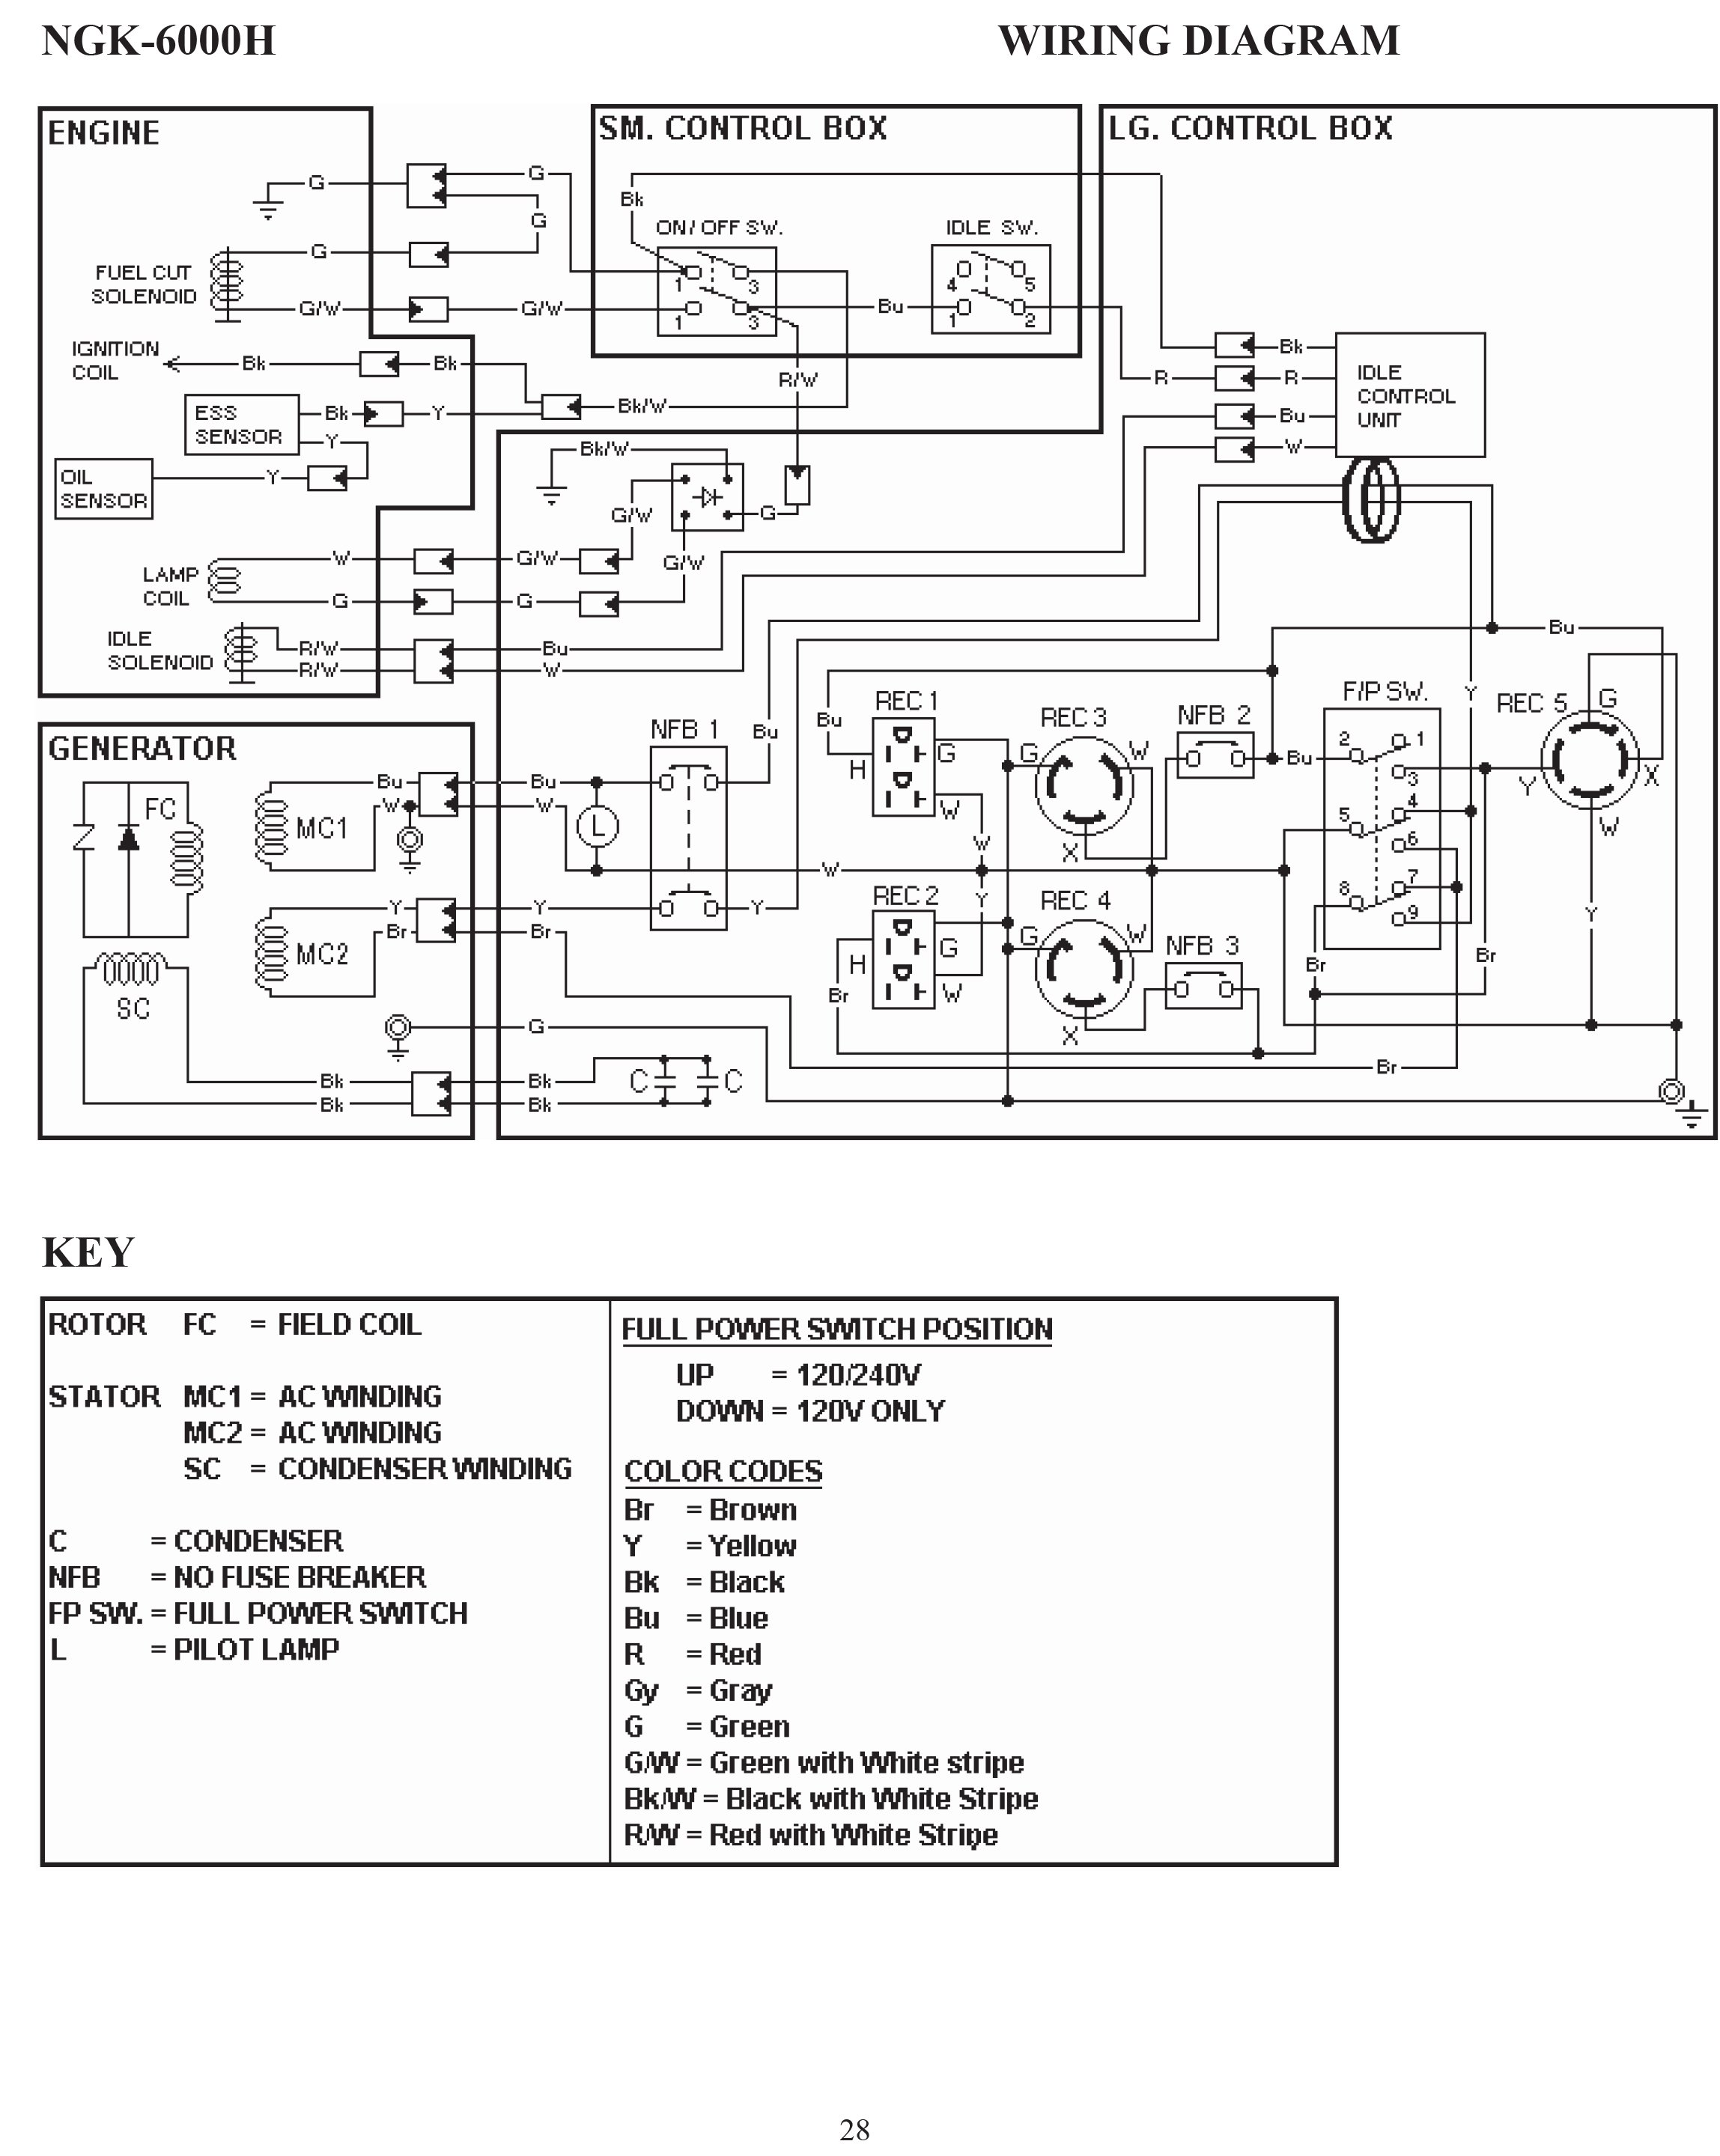 Generator Engine Wiring Diagram | Wiring Diagram on onan points replacement, chrysler generator wiring, generac generator wiring, onan power generators, onan model 4kyfa26100k, portable generator wiring, kato generator wiring, onan manuals, 3 phase generator wiring, hyundai generator wiring, onan pc board, onan model 6, bosch generator wiring, onan portable generators, wind generator wiring, rv generator wiring, craftsman generator wiring, champion generator wiring, 4 wire generator wiring, home generator wiring,